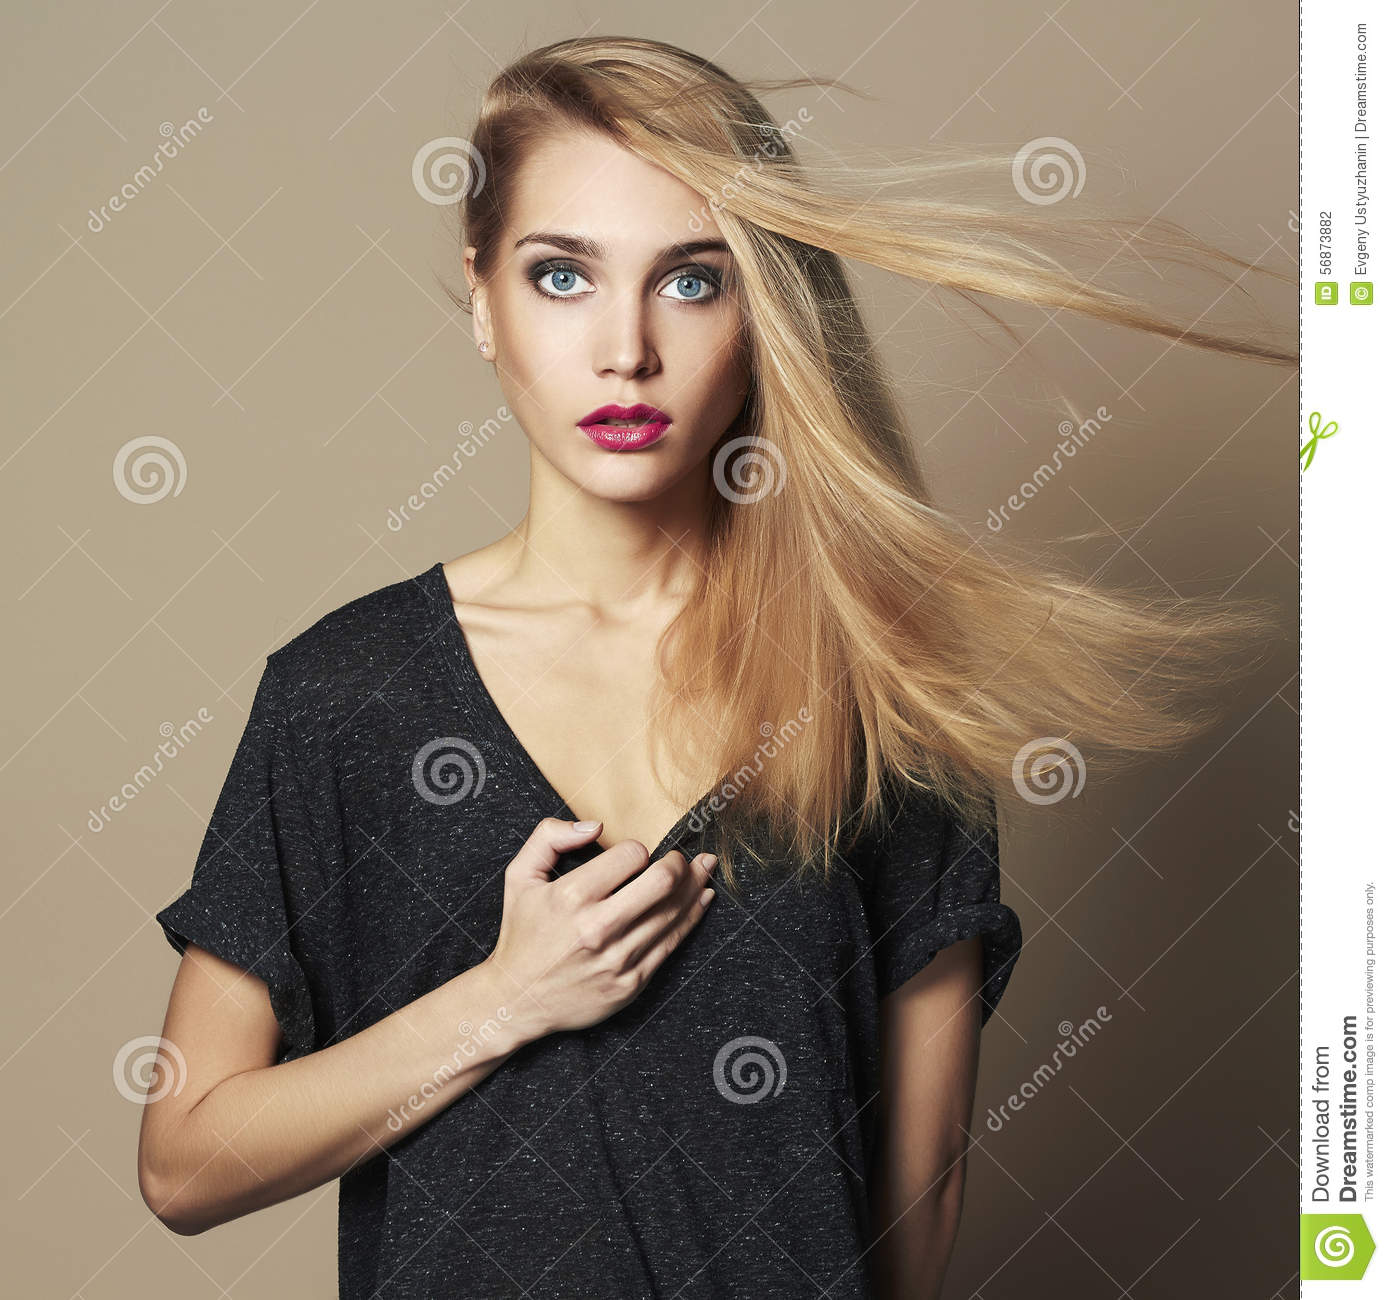 Pretty Girl Hair Salon: Beautiful Young Woman.Blond Girl.Beauty Salon Make-up